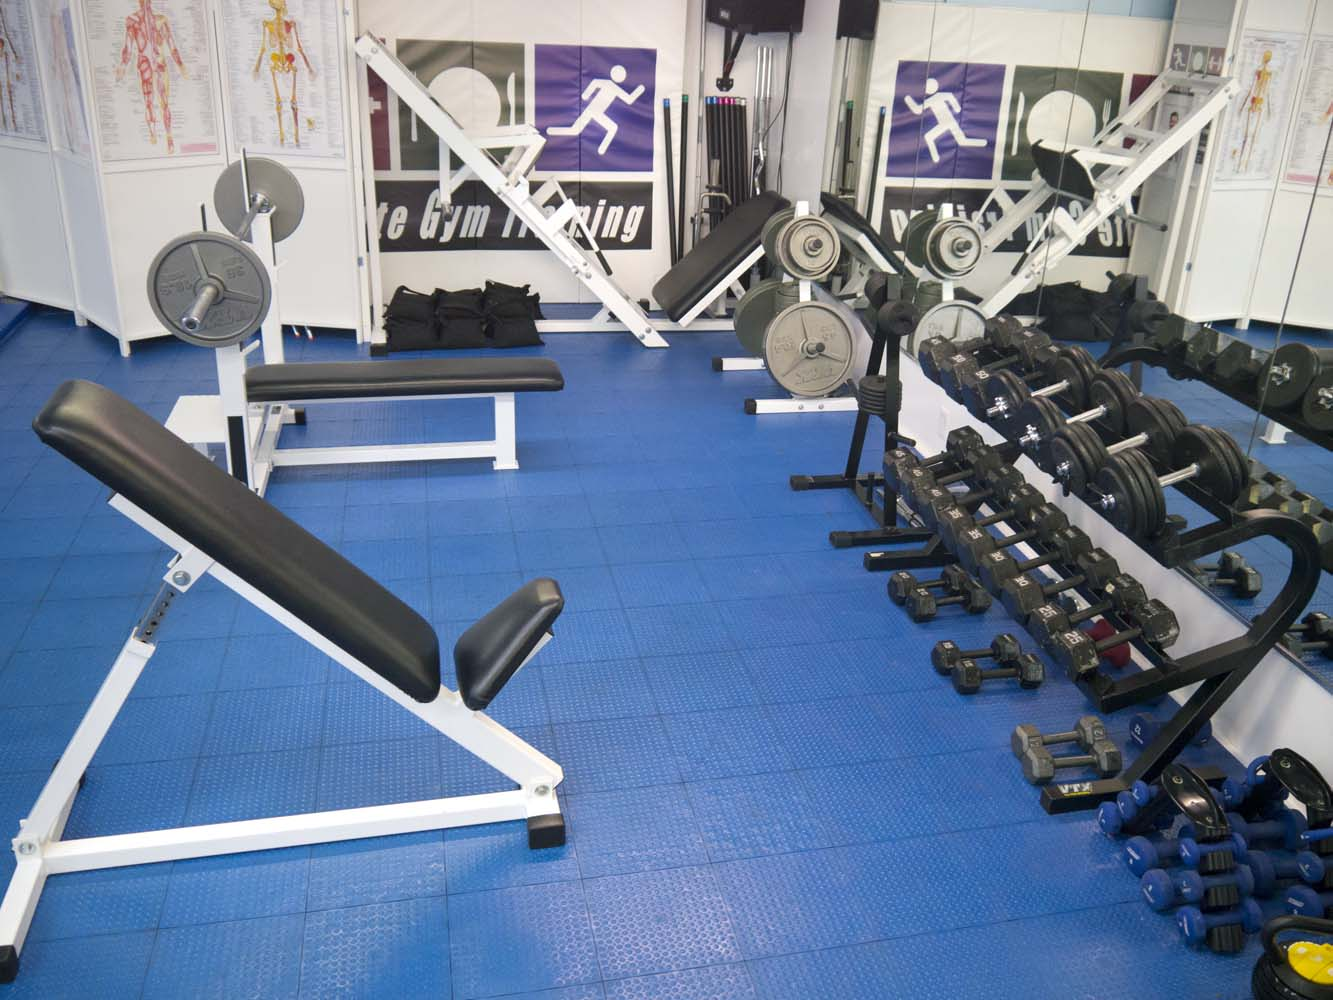 Gym - Freeweights Area